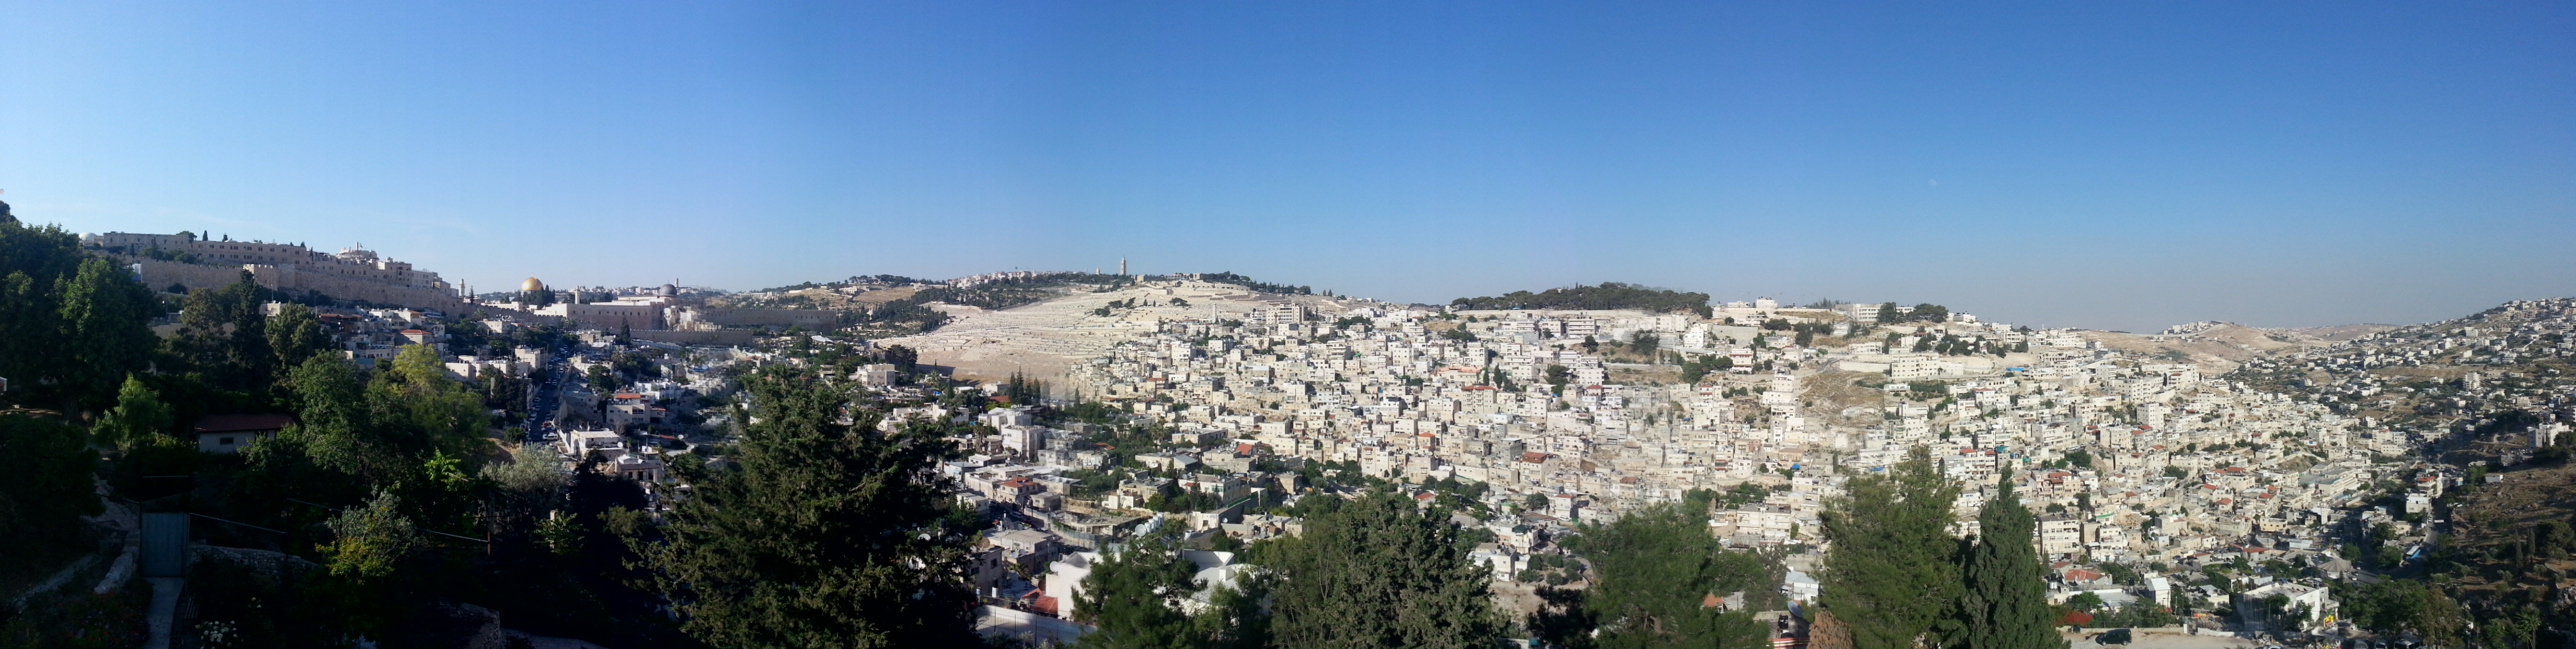 View over Jerusalem from Mount Zion